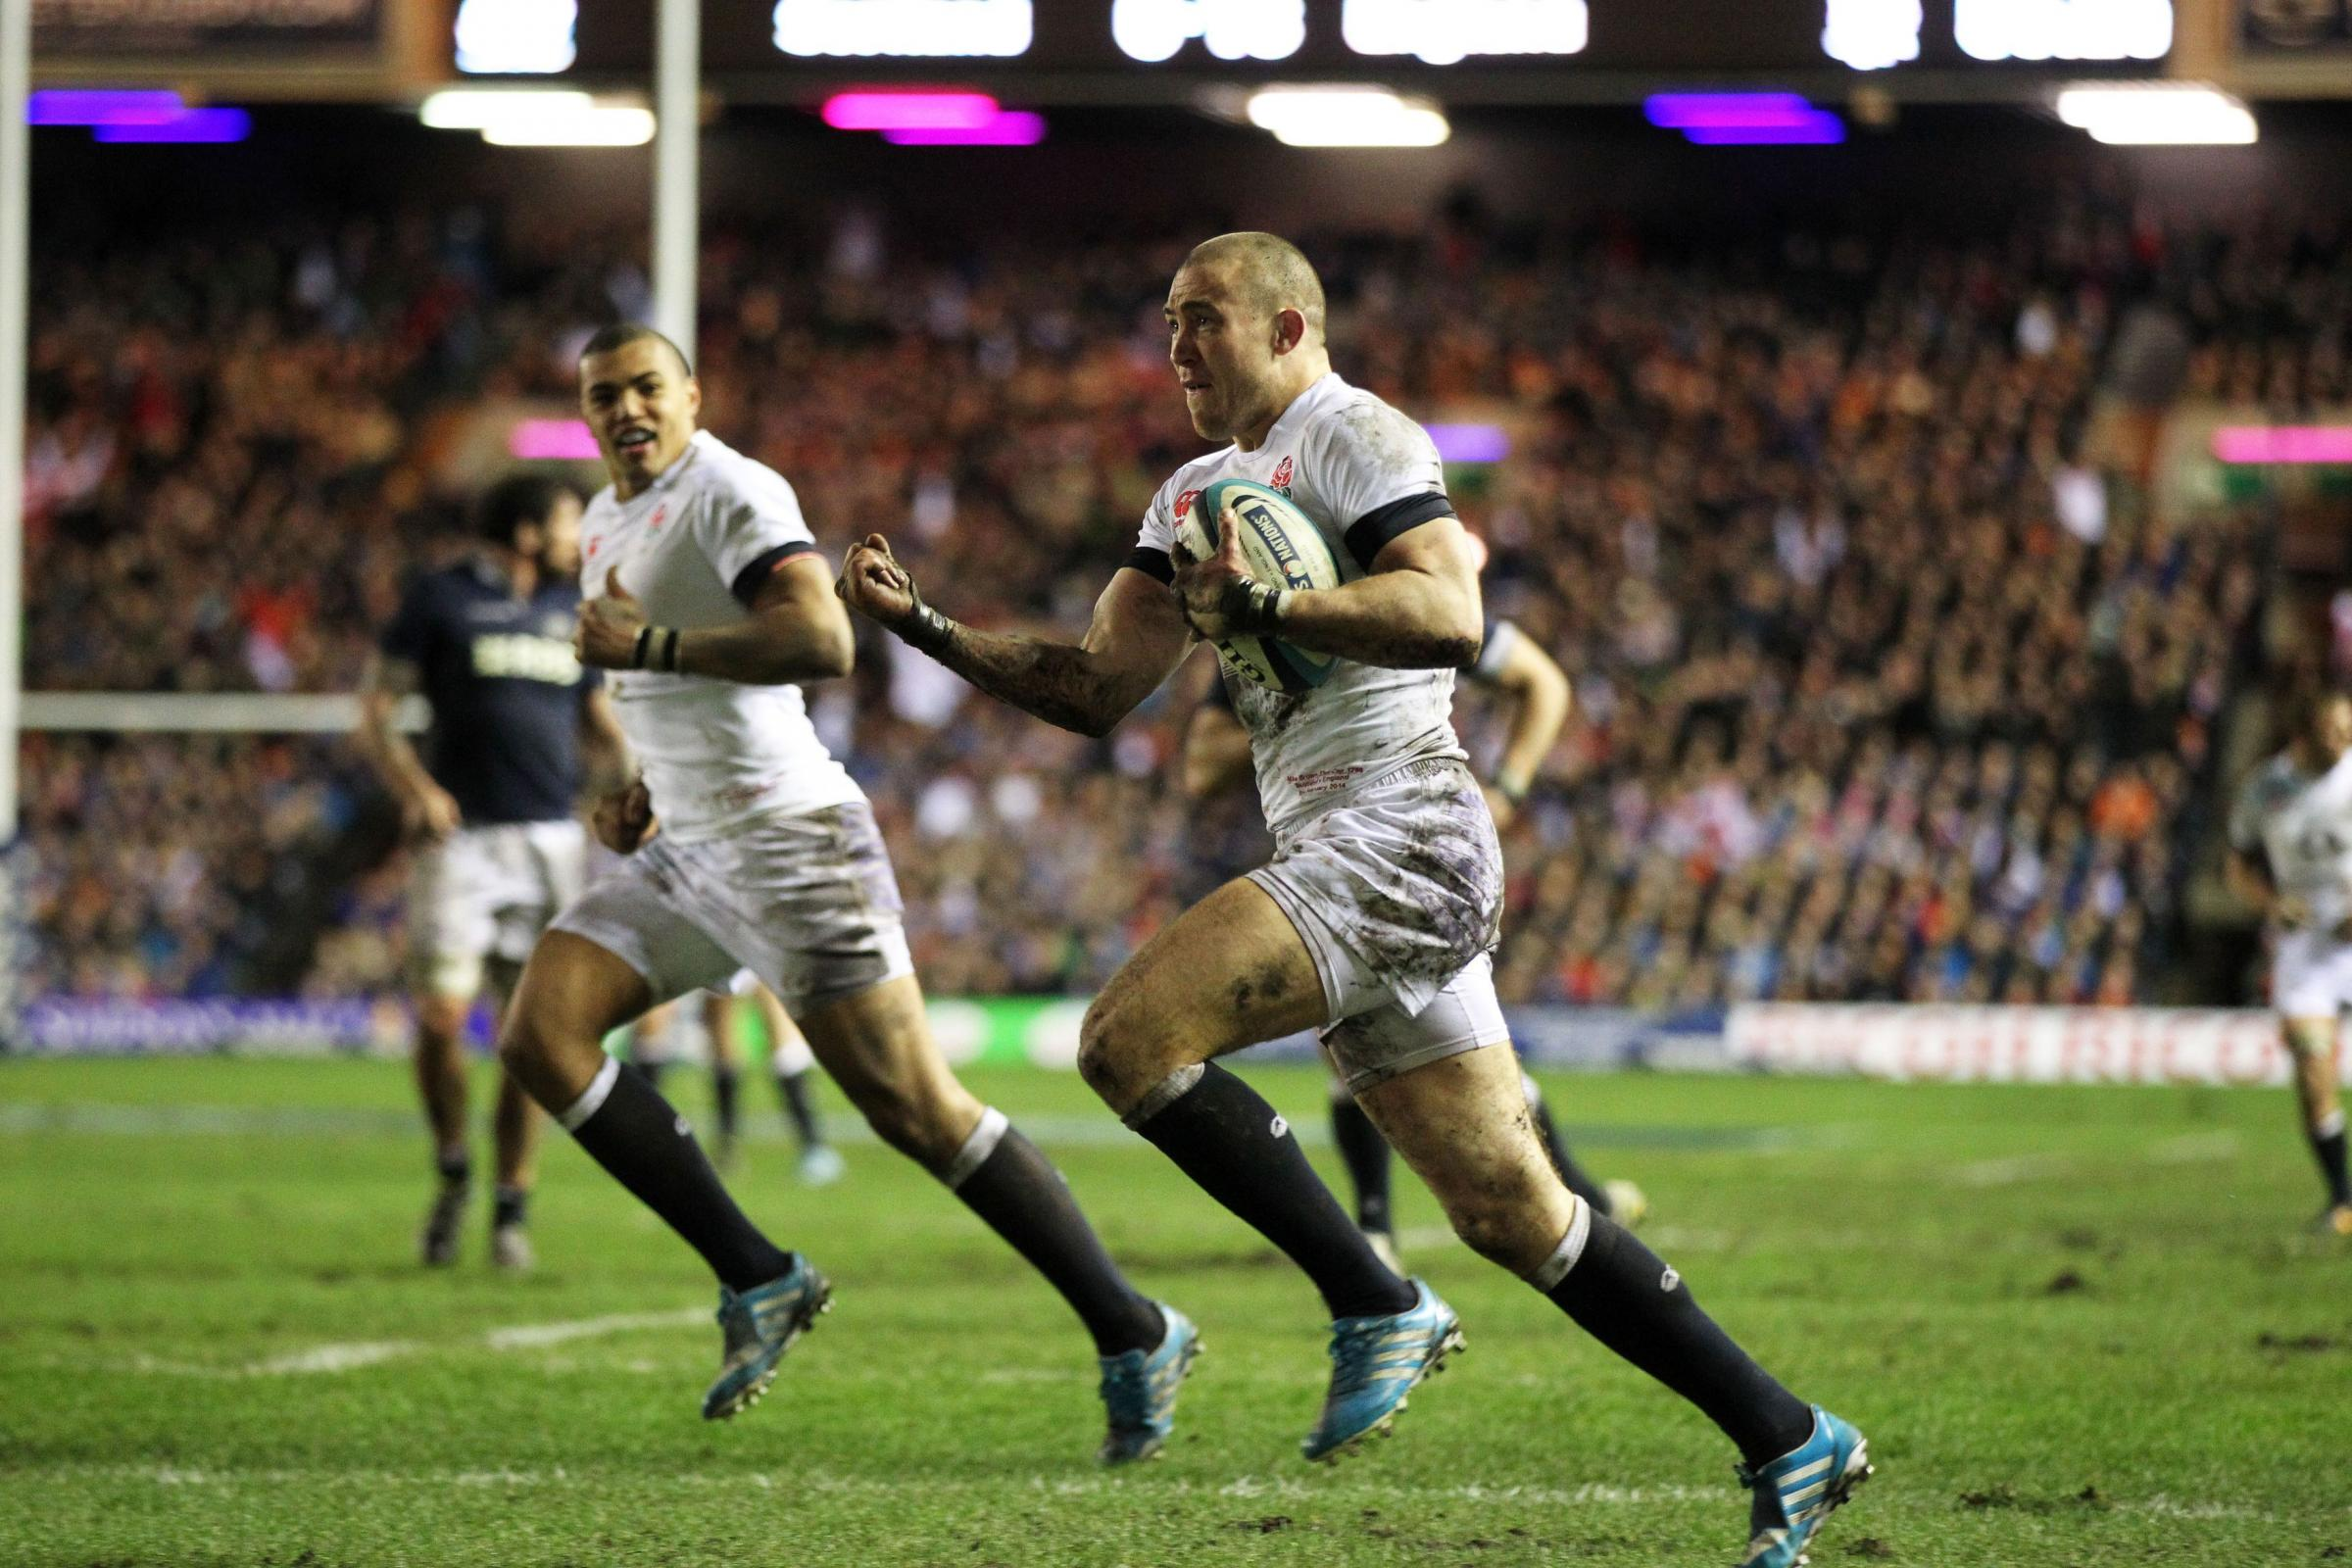 Brown stars in Calcutta Cup win